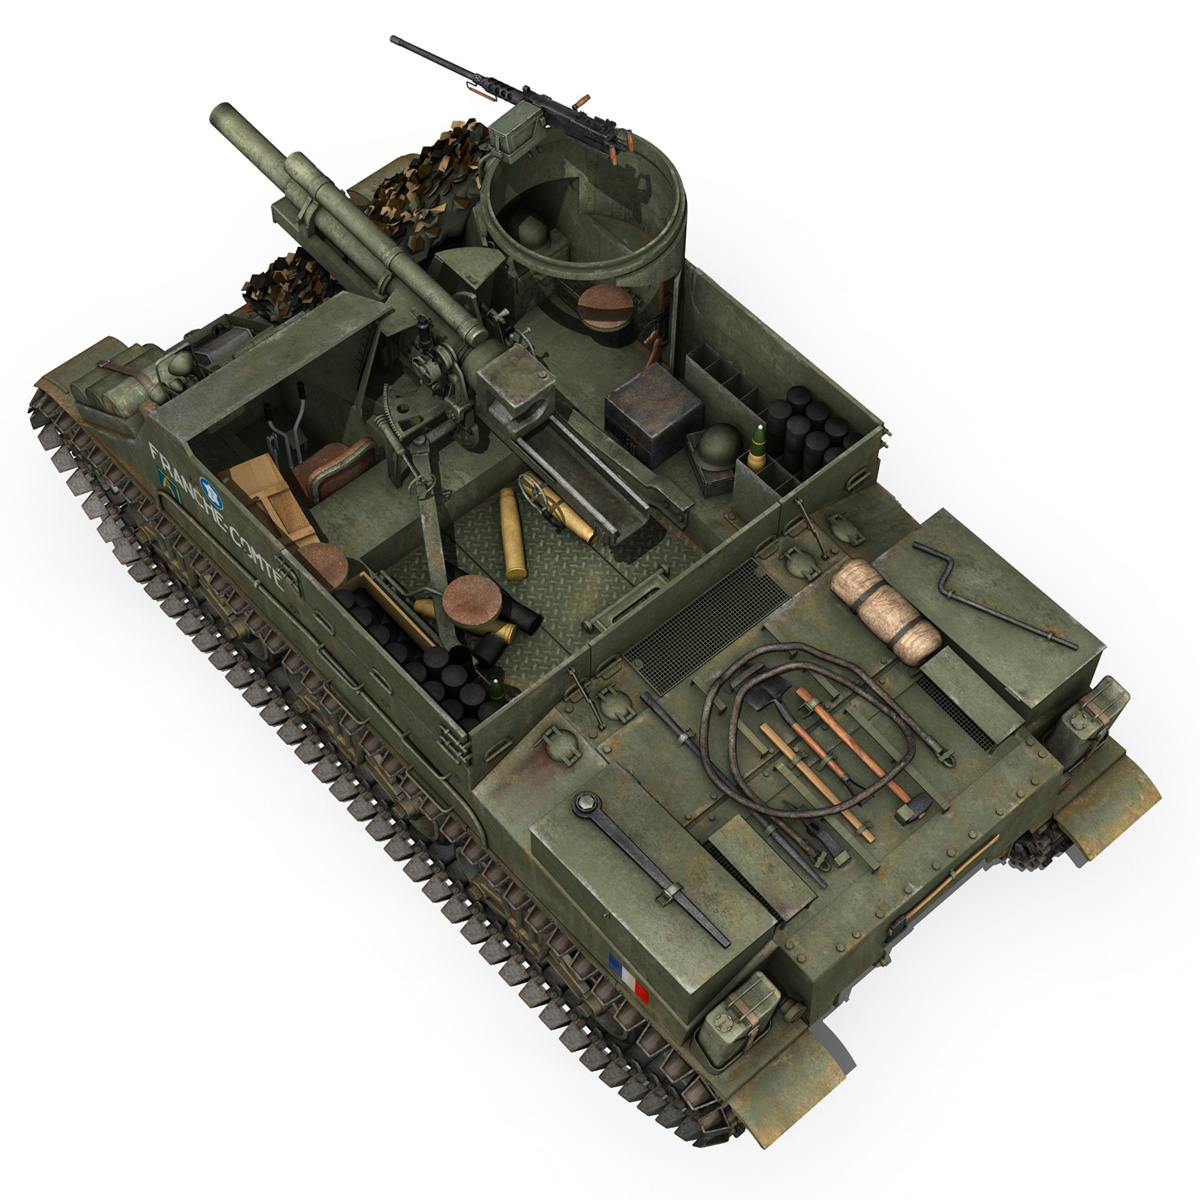 M7 Priest - Franche-Comte 3d model  265866